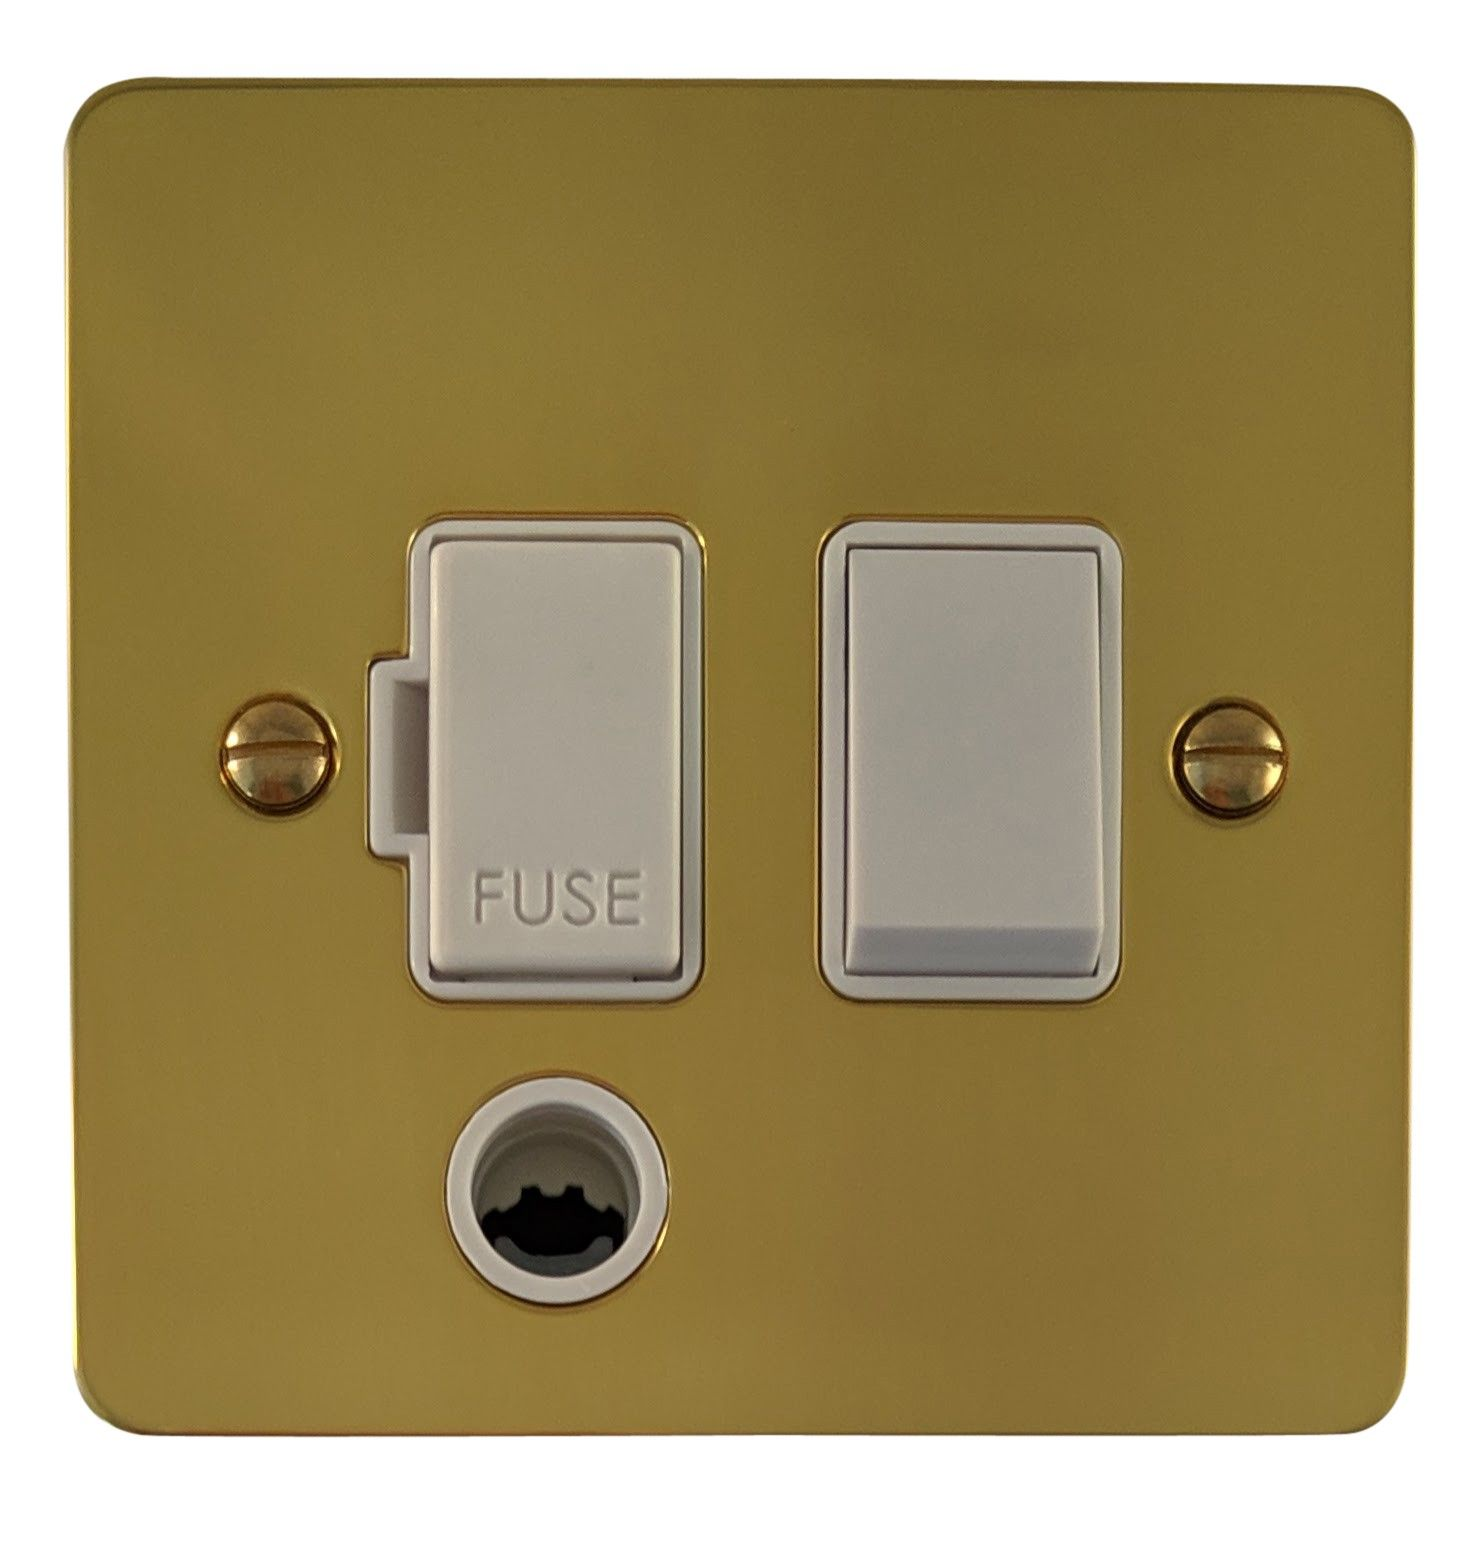 G&H FB56W Flat Plate Polished Brass 1 Gang Fused Spur 13A Switched & Flex Outlet